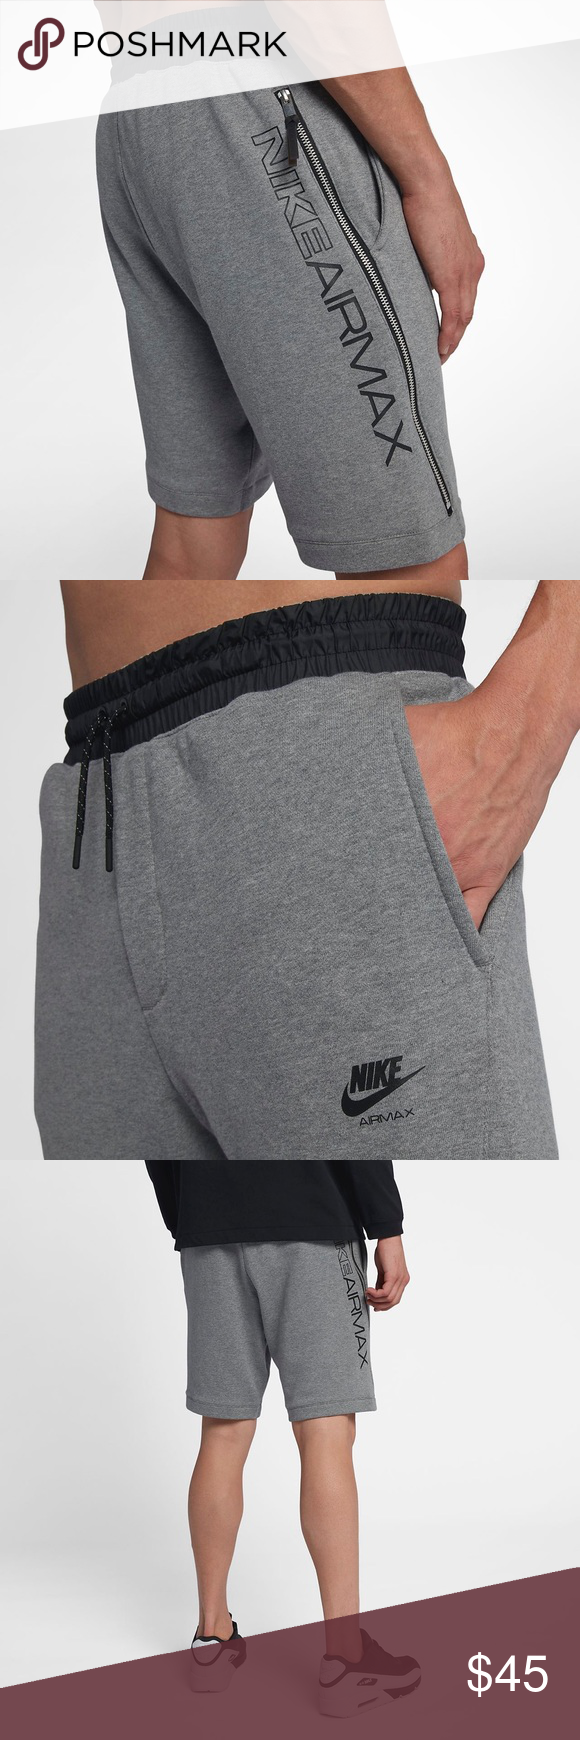 b94166b296b MENS NIKE AIR MAX FRENCH TERRY SHORTS | NWT ☑ Item is brand with tags